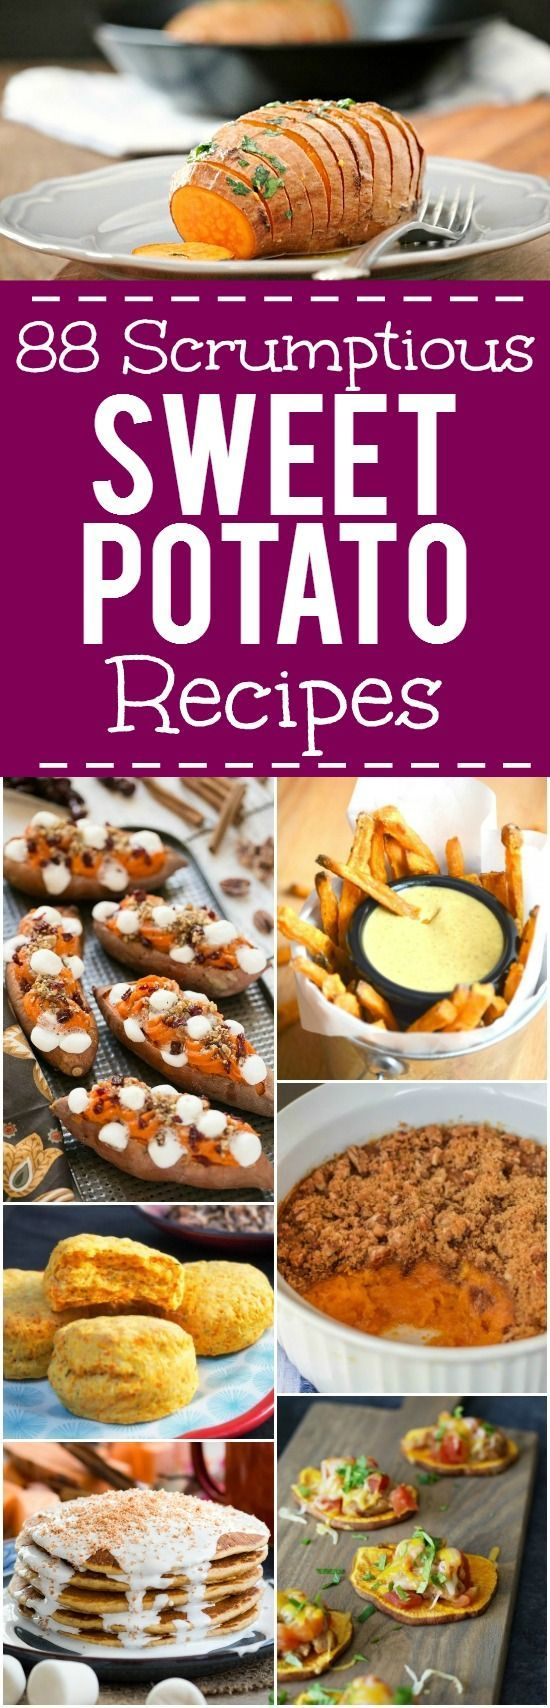 Sweet Potato Recipes - Side Dishes, dinners, breakfast, and dessert.88 of the BEST Sweet Potato Recipes for warm, cozy dinners, unique breakfasts and desserts, and delicious and festive Thanksgiving side dishes.